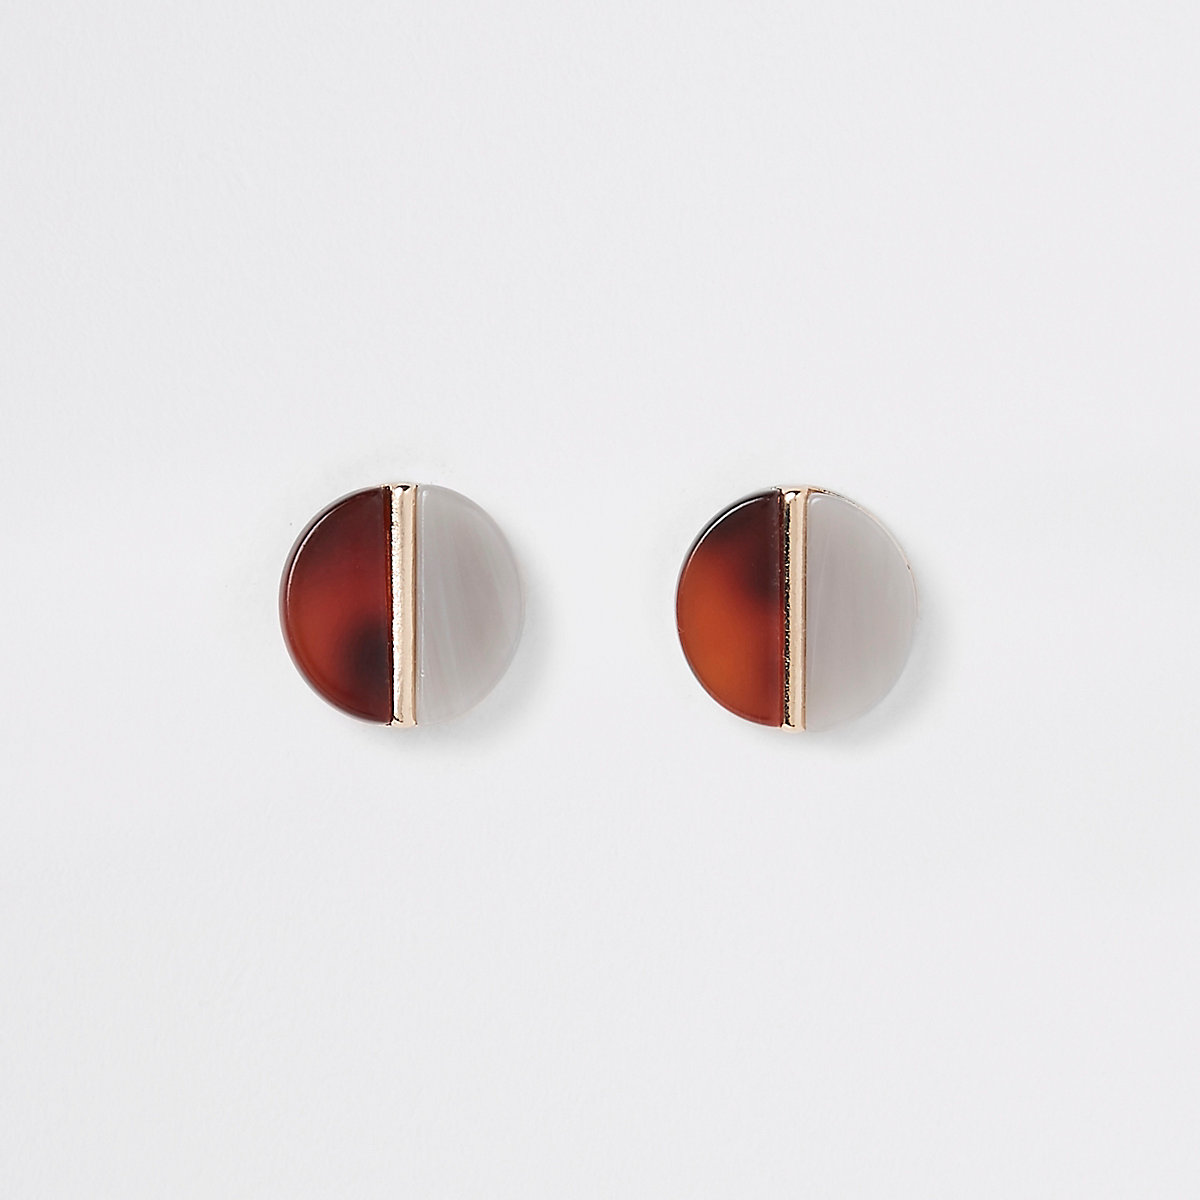 Brown resin split circle stud earrings